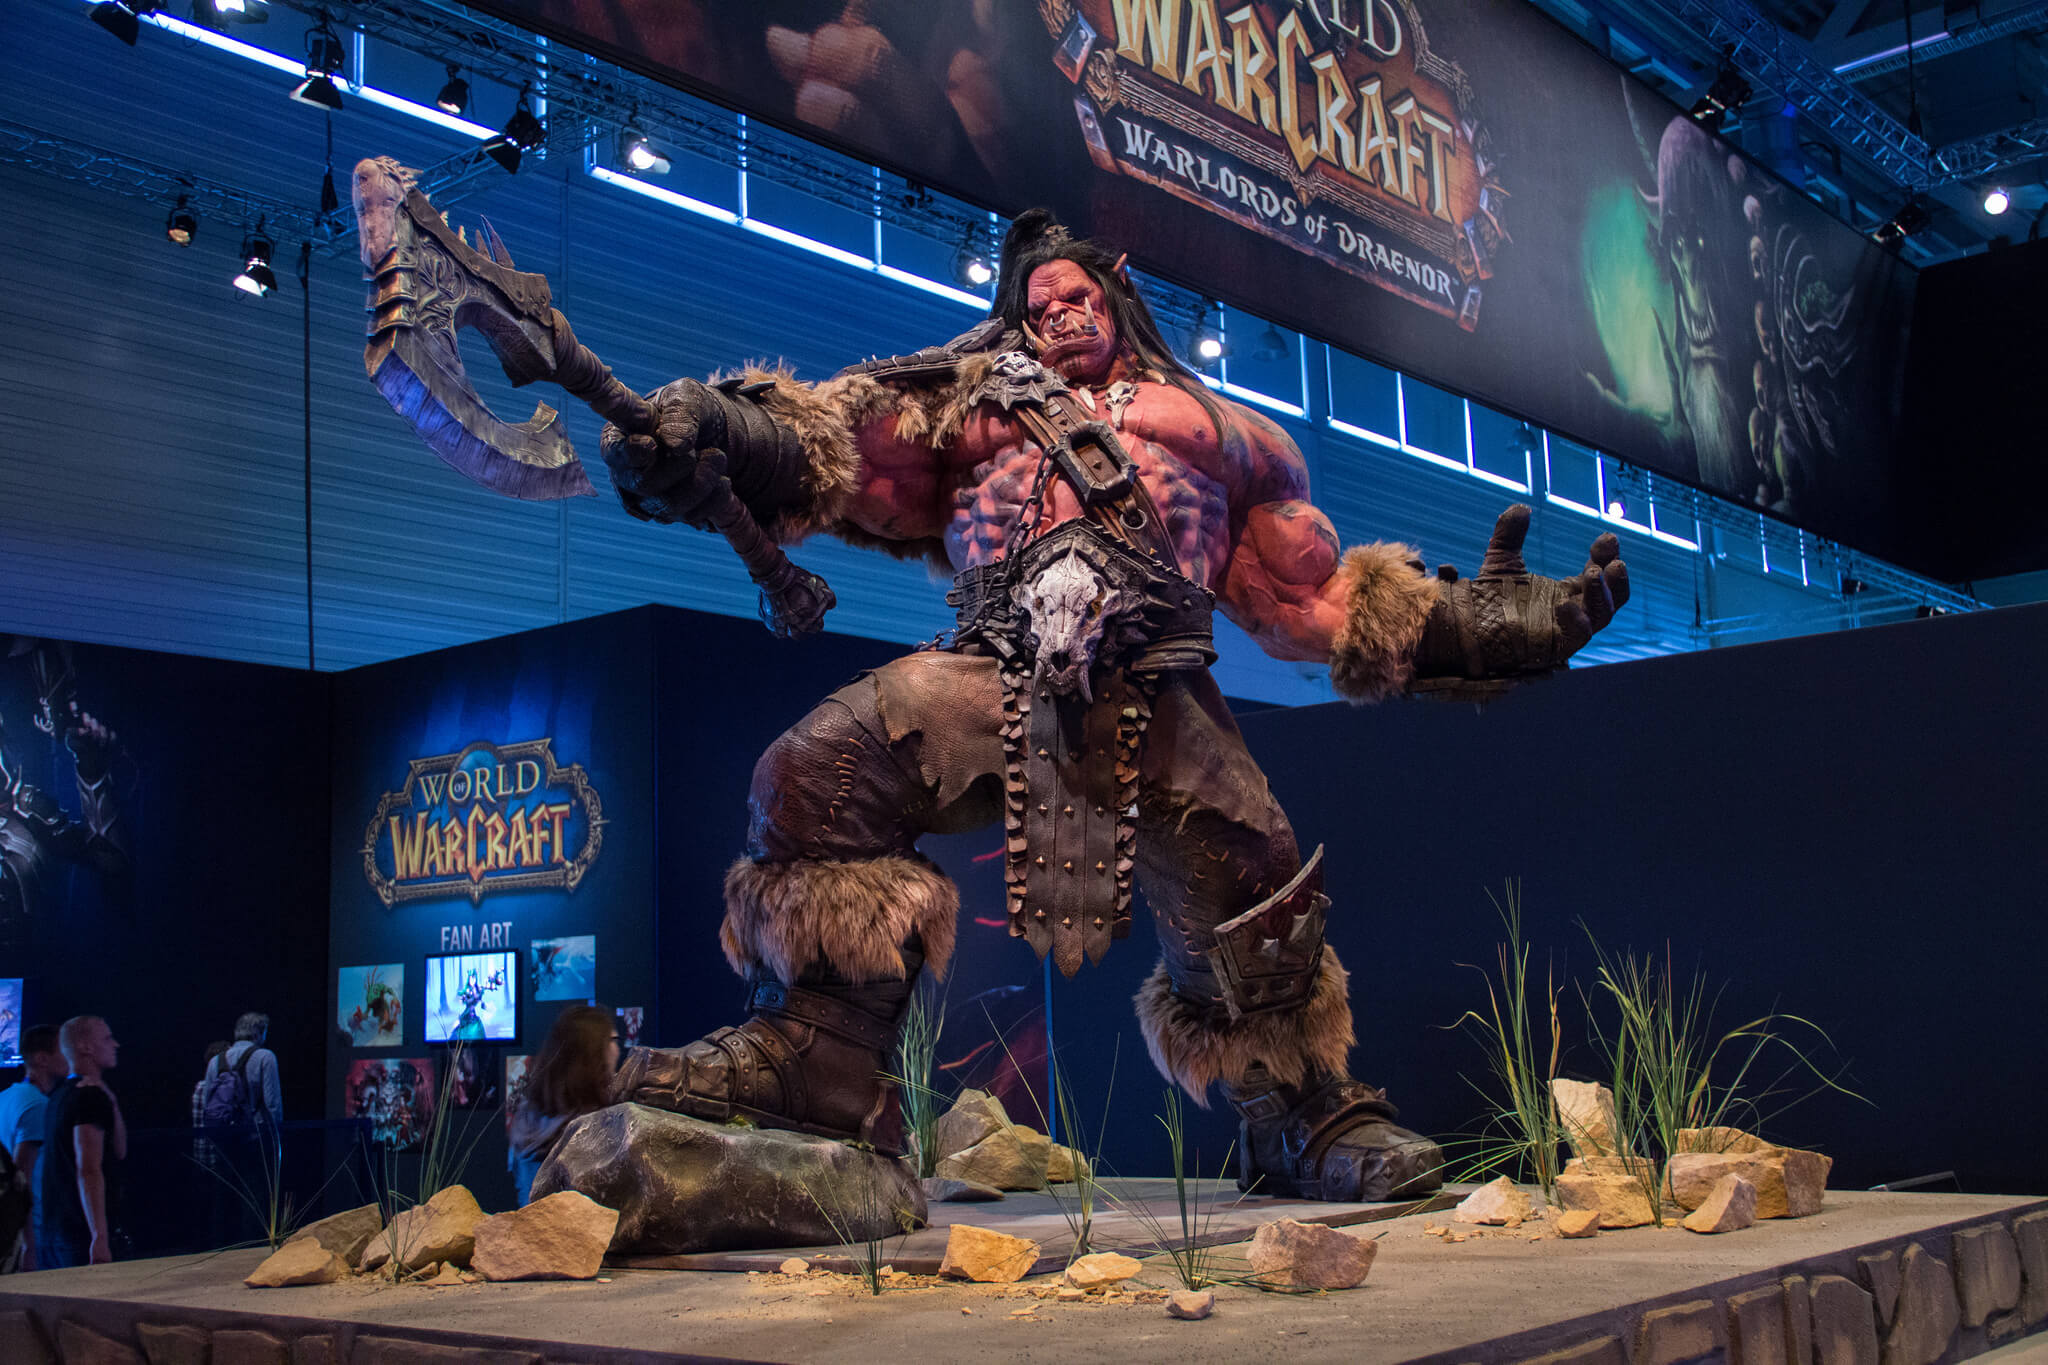 World of Warcraft: Blizzard vermeldet 10 Millionen Abonnenten 1